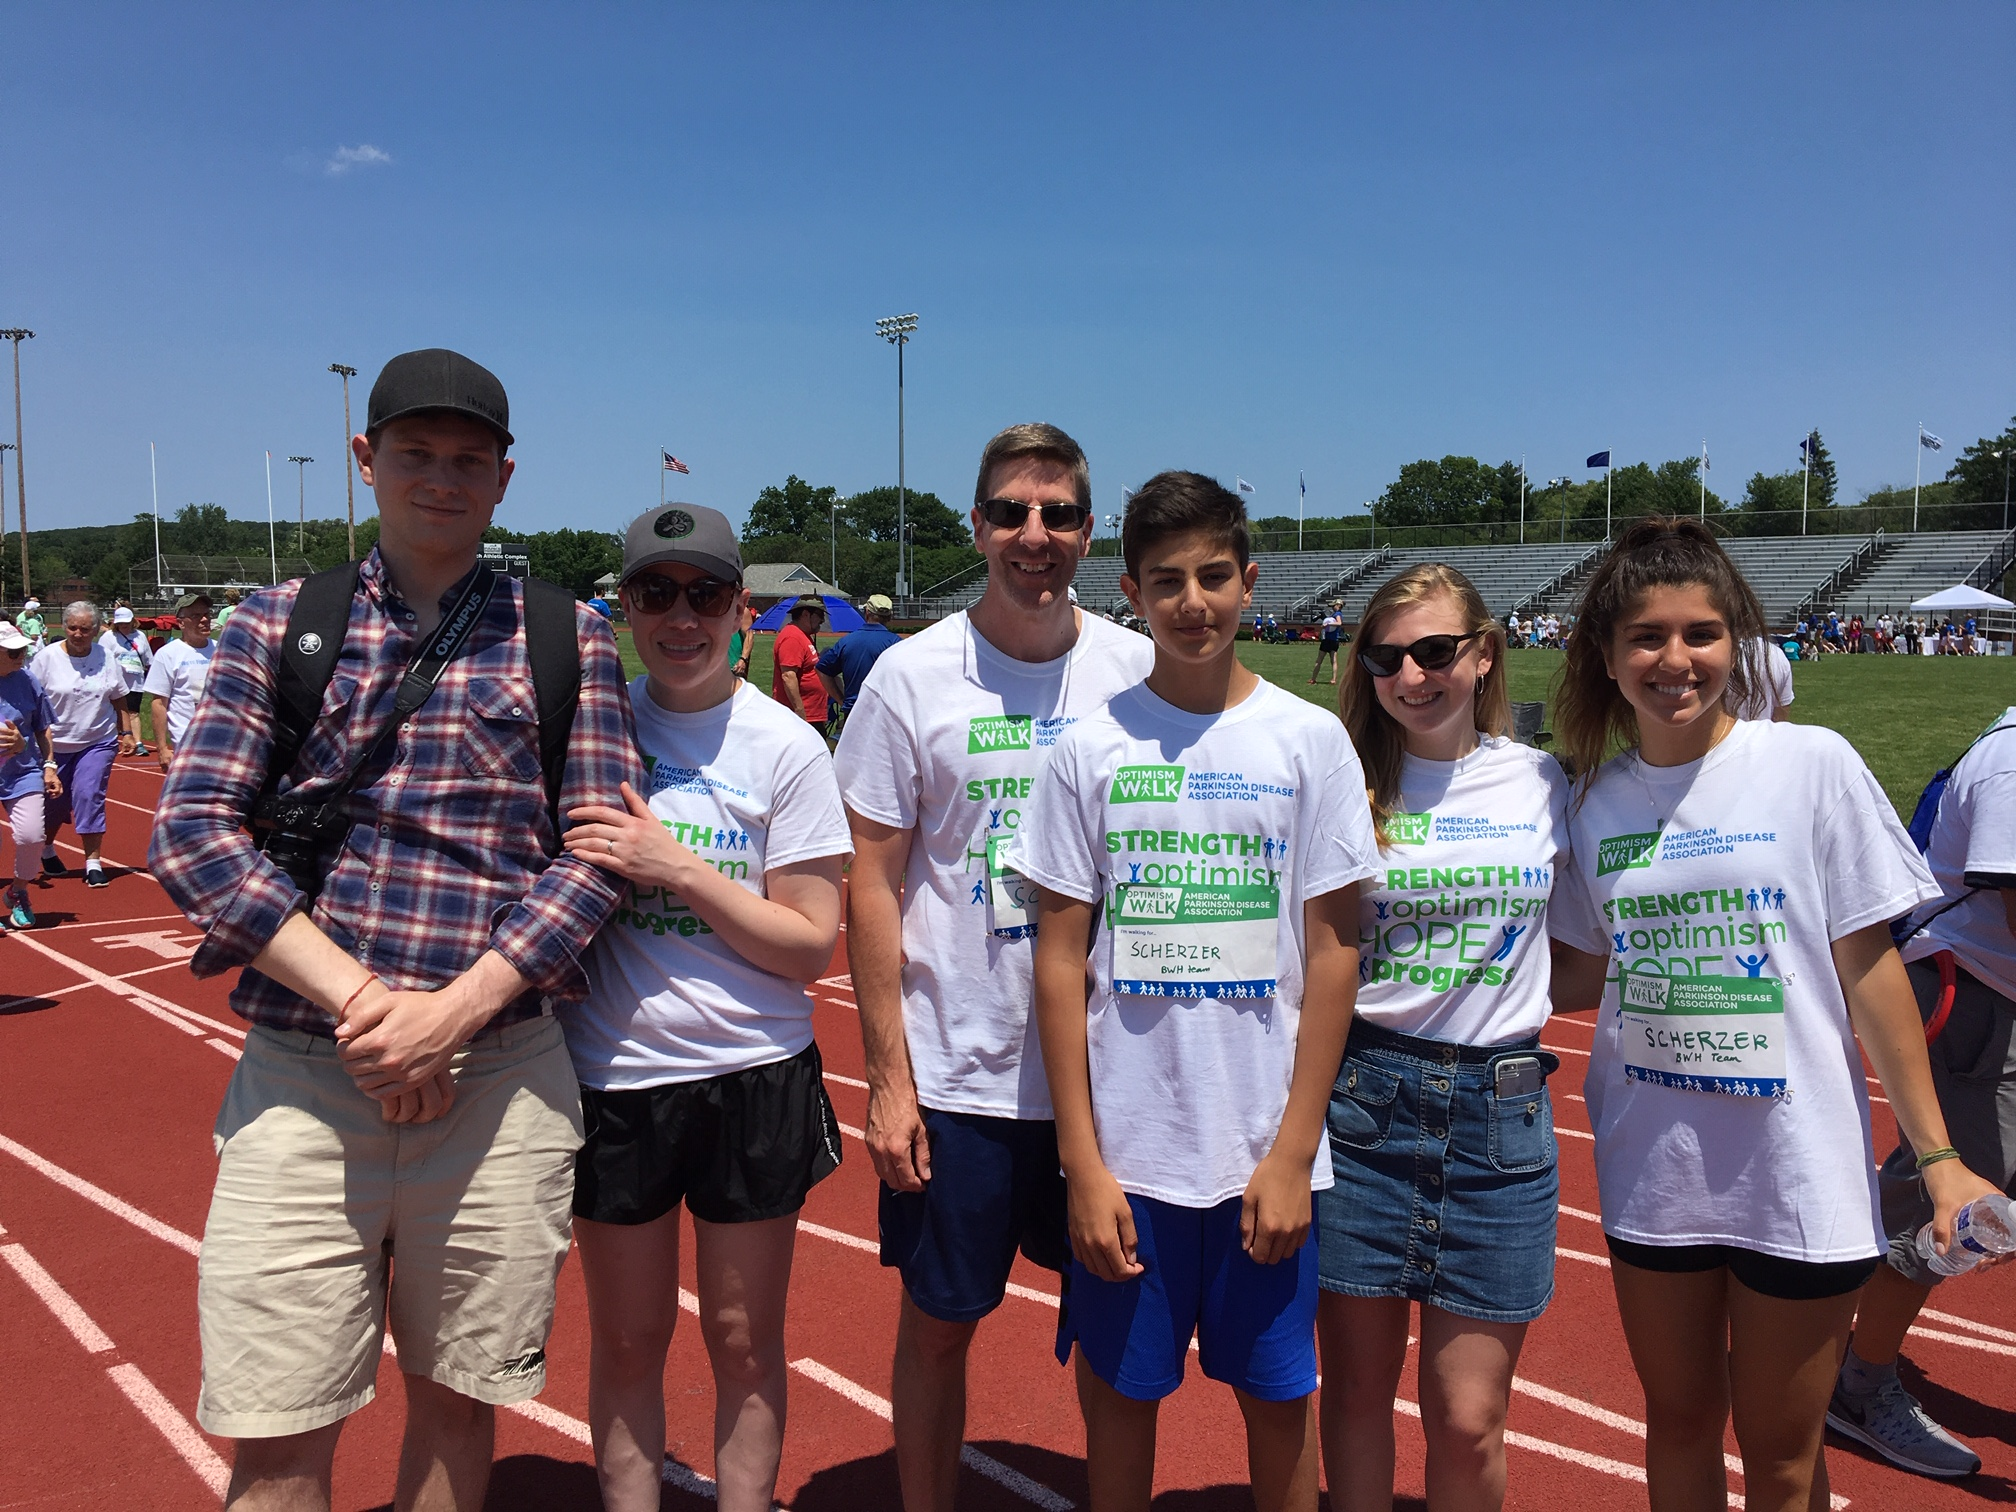 APDA Optimism Walk Photo 062019